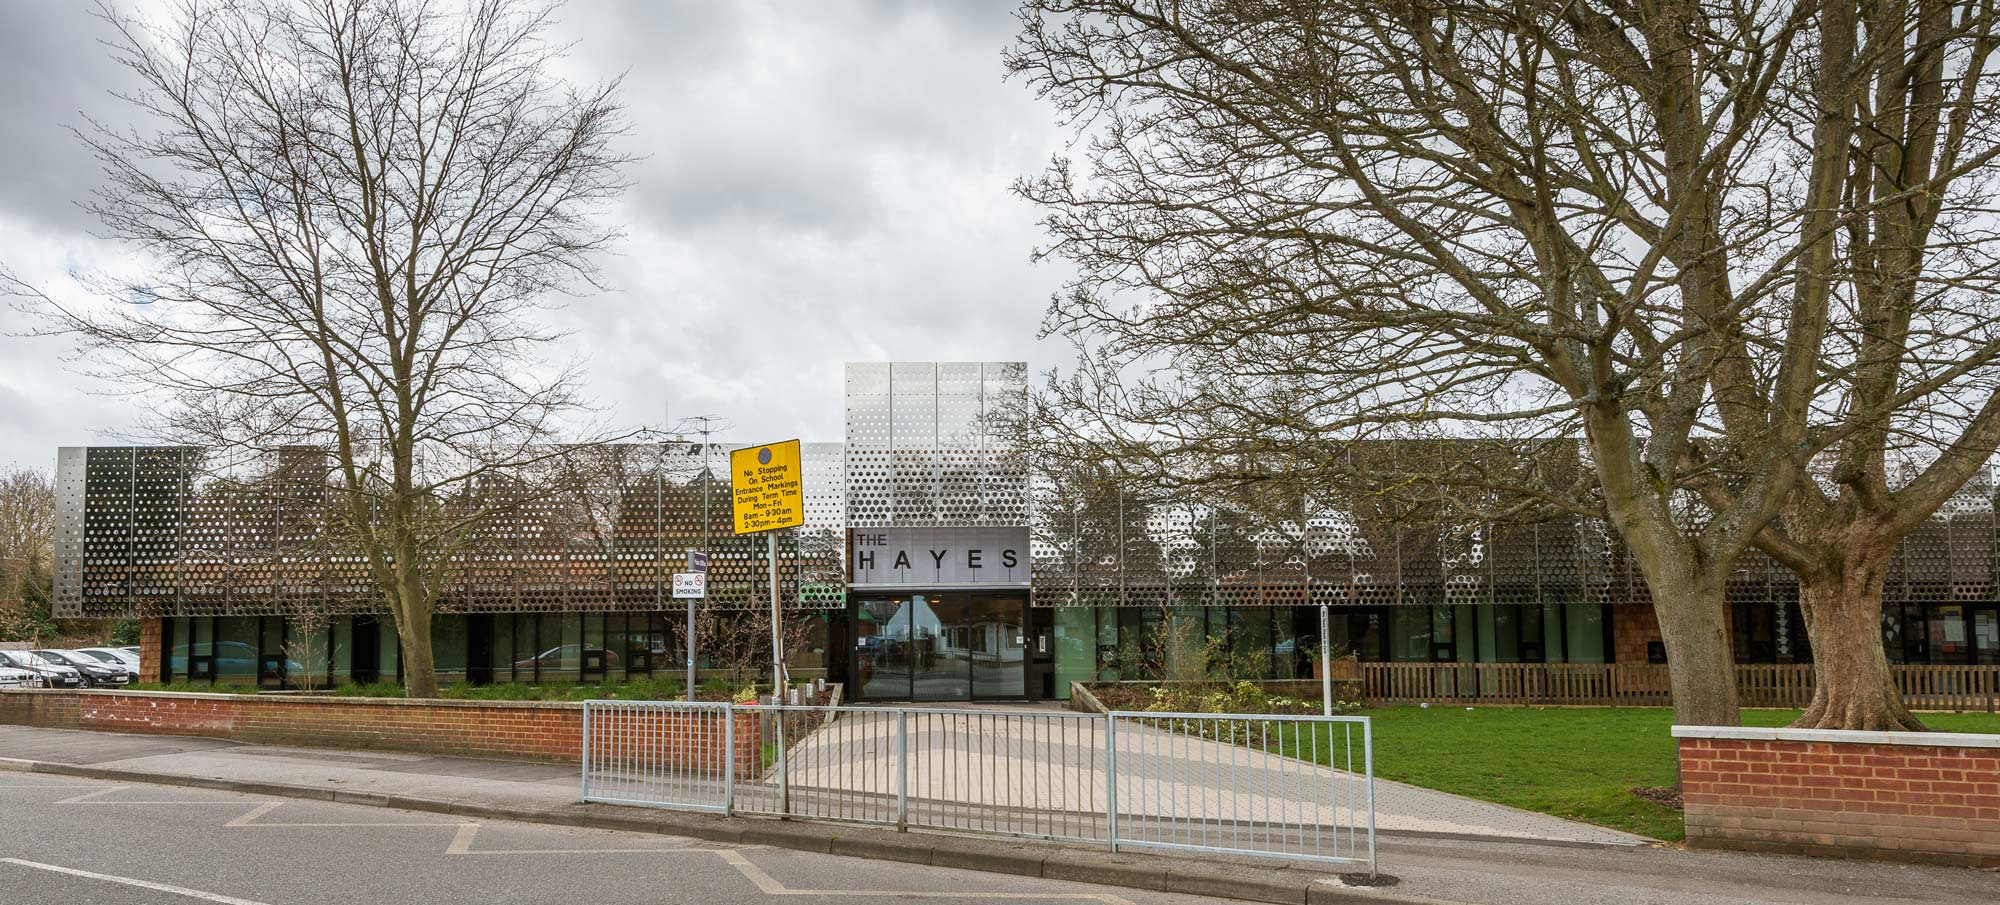 Hayes Primary School Hayhurst And Co